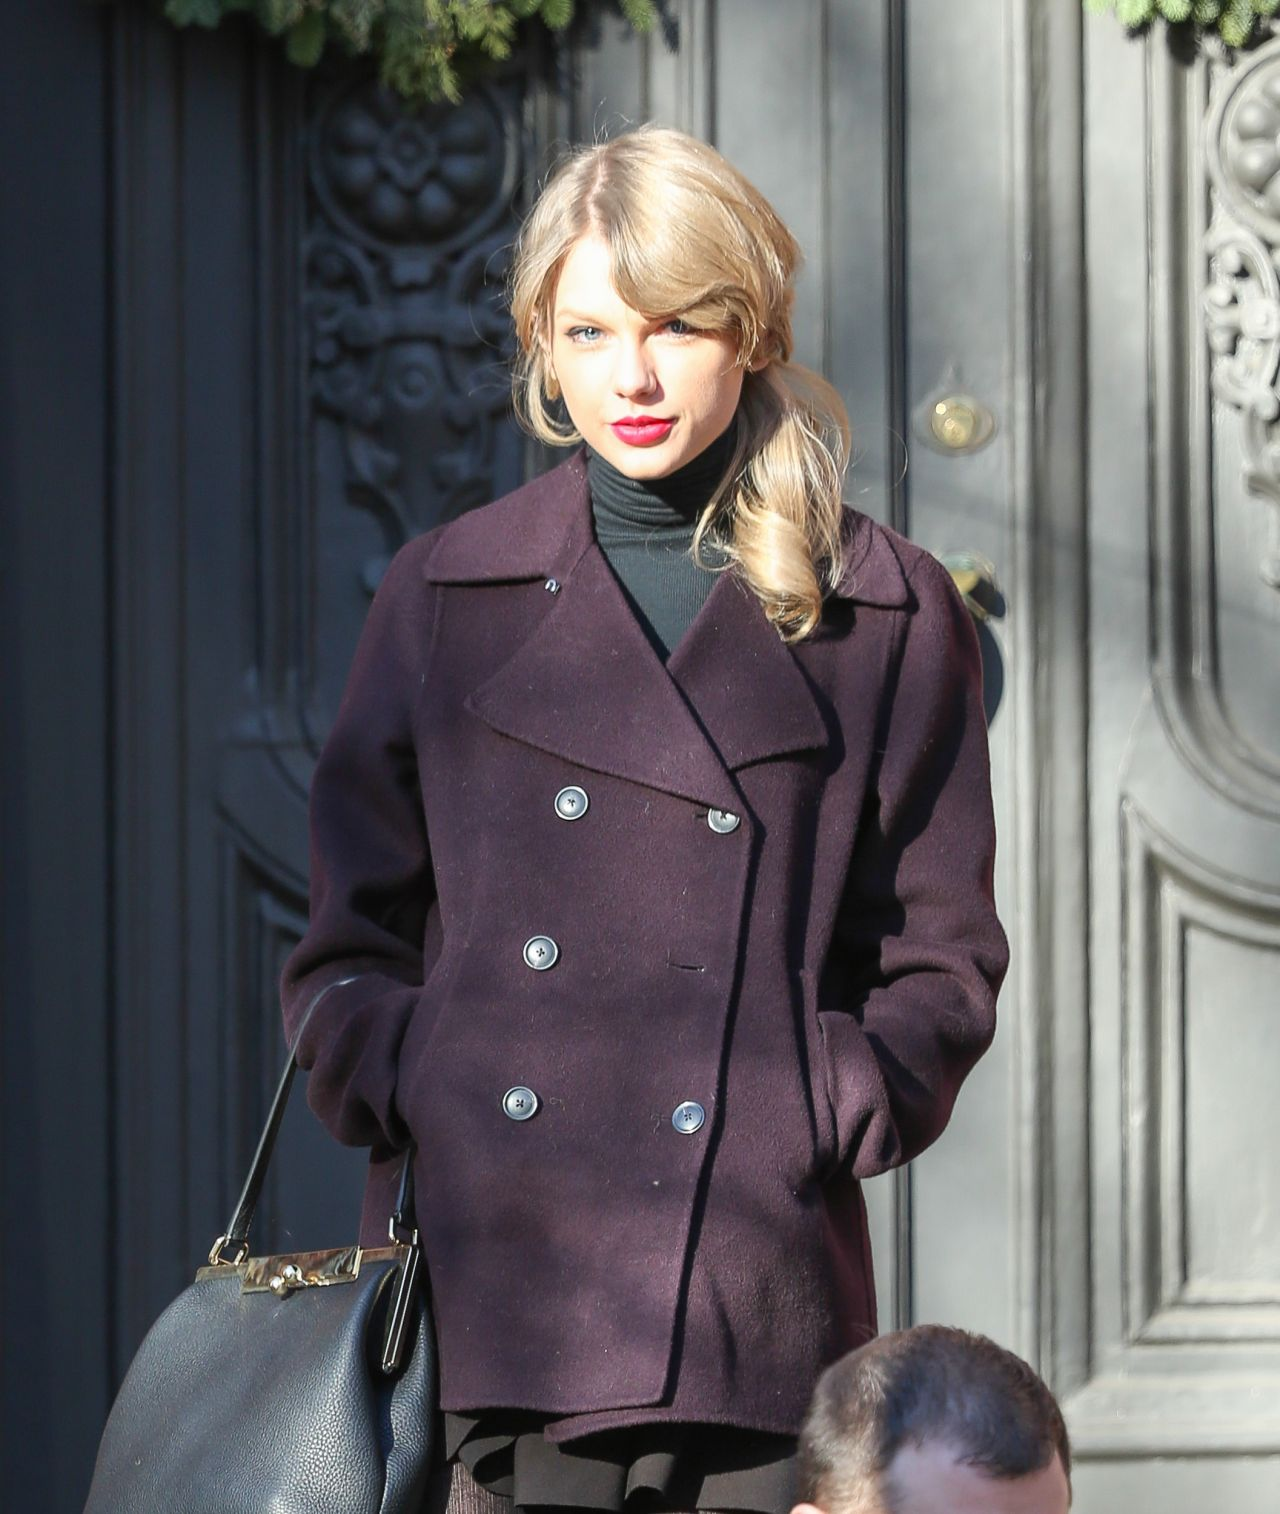 Taylor Swift Street Style Looking For Appartment In New York January 2014